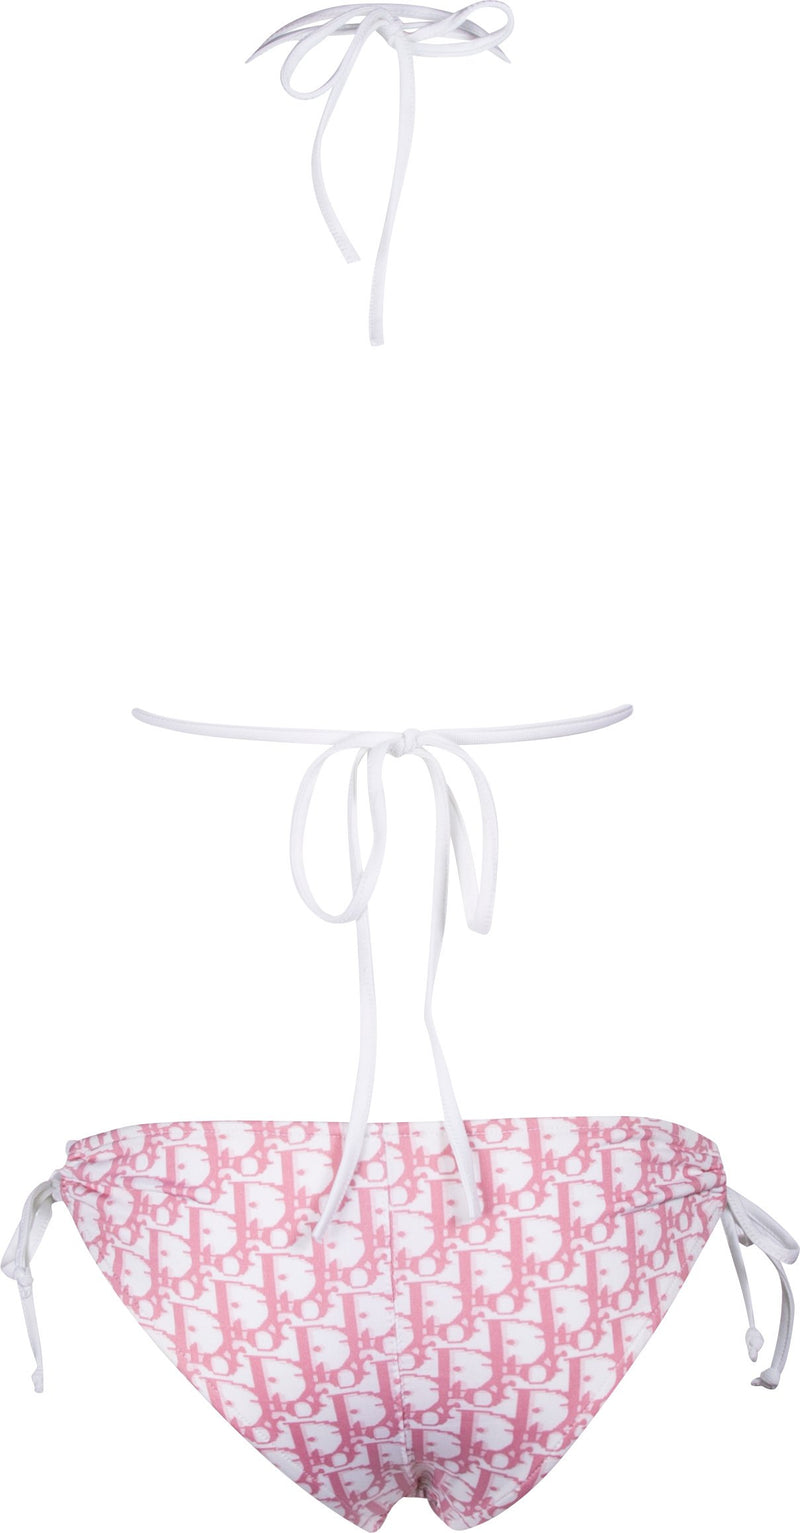 Christian Dior Diorissimo Girly Pink String Bikini